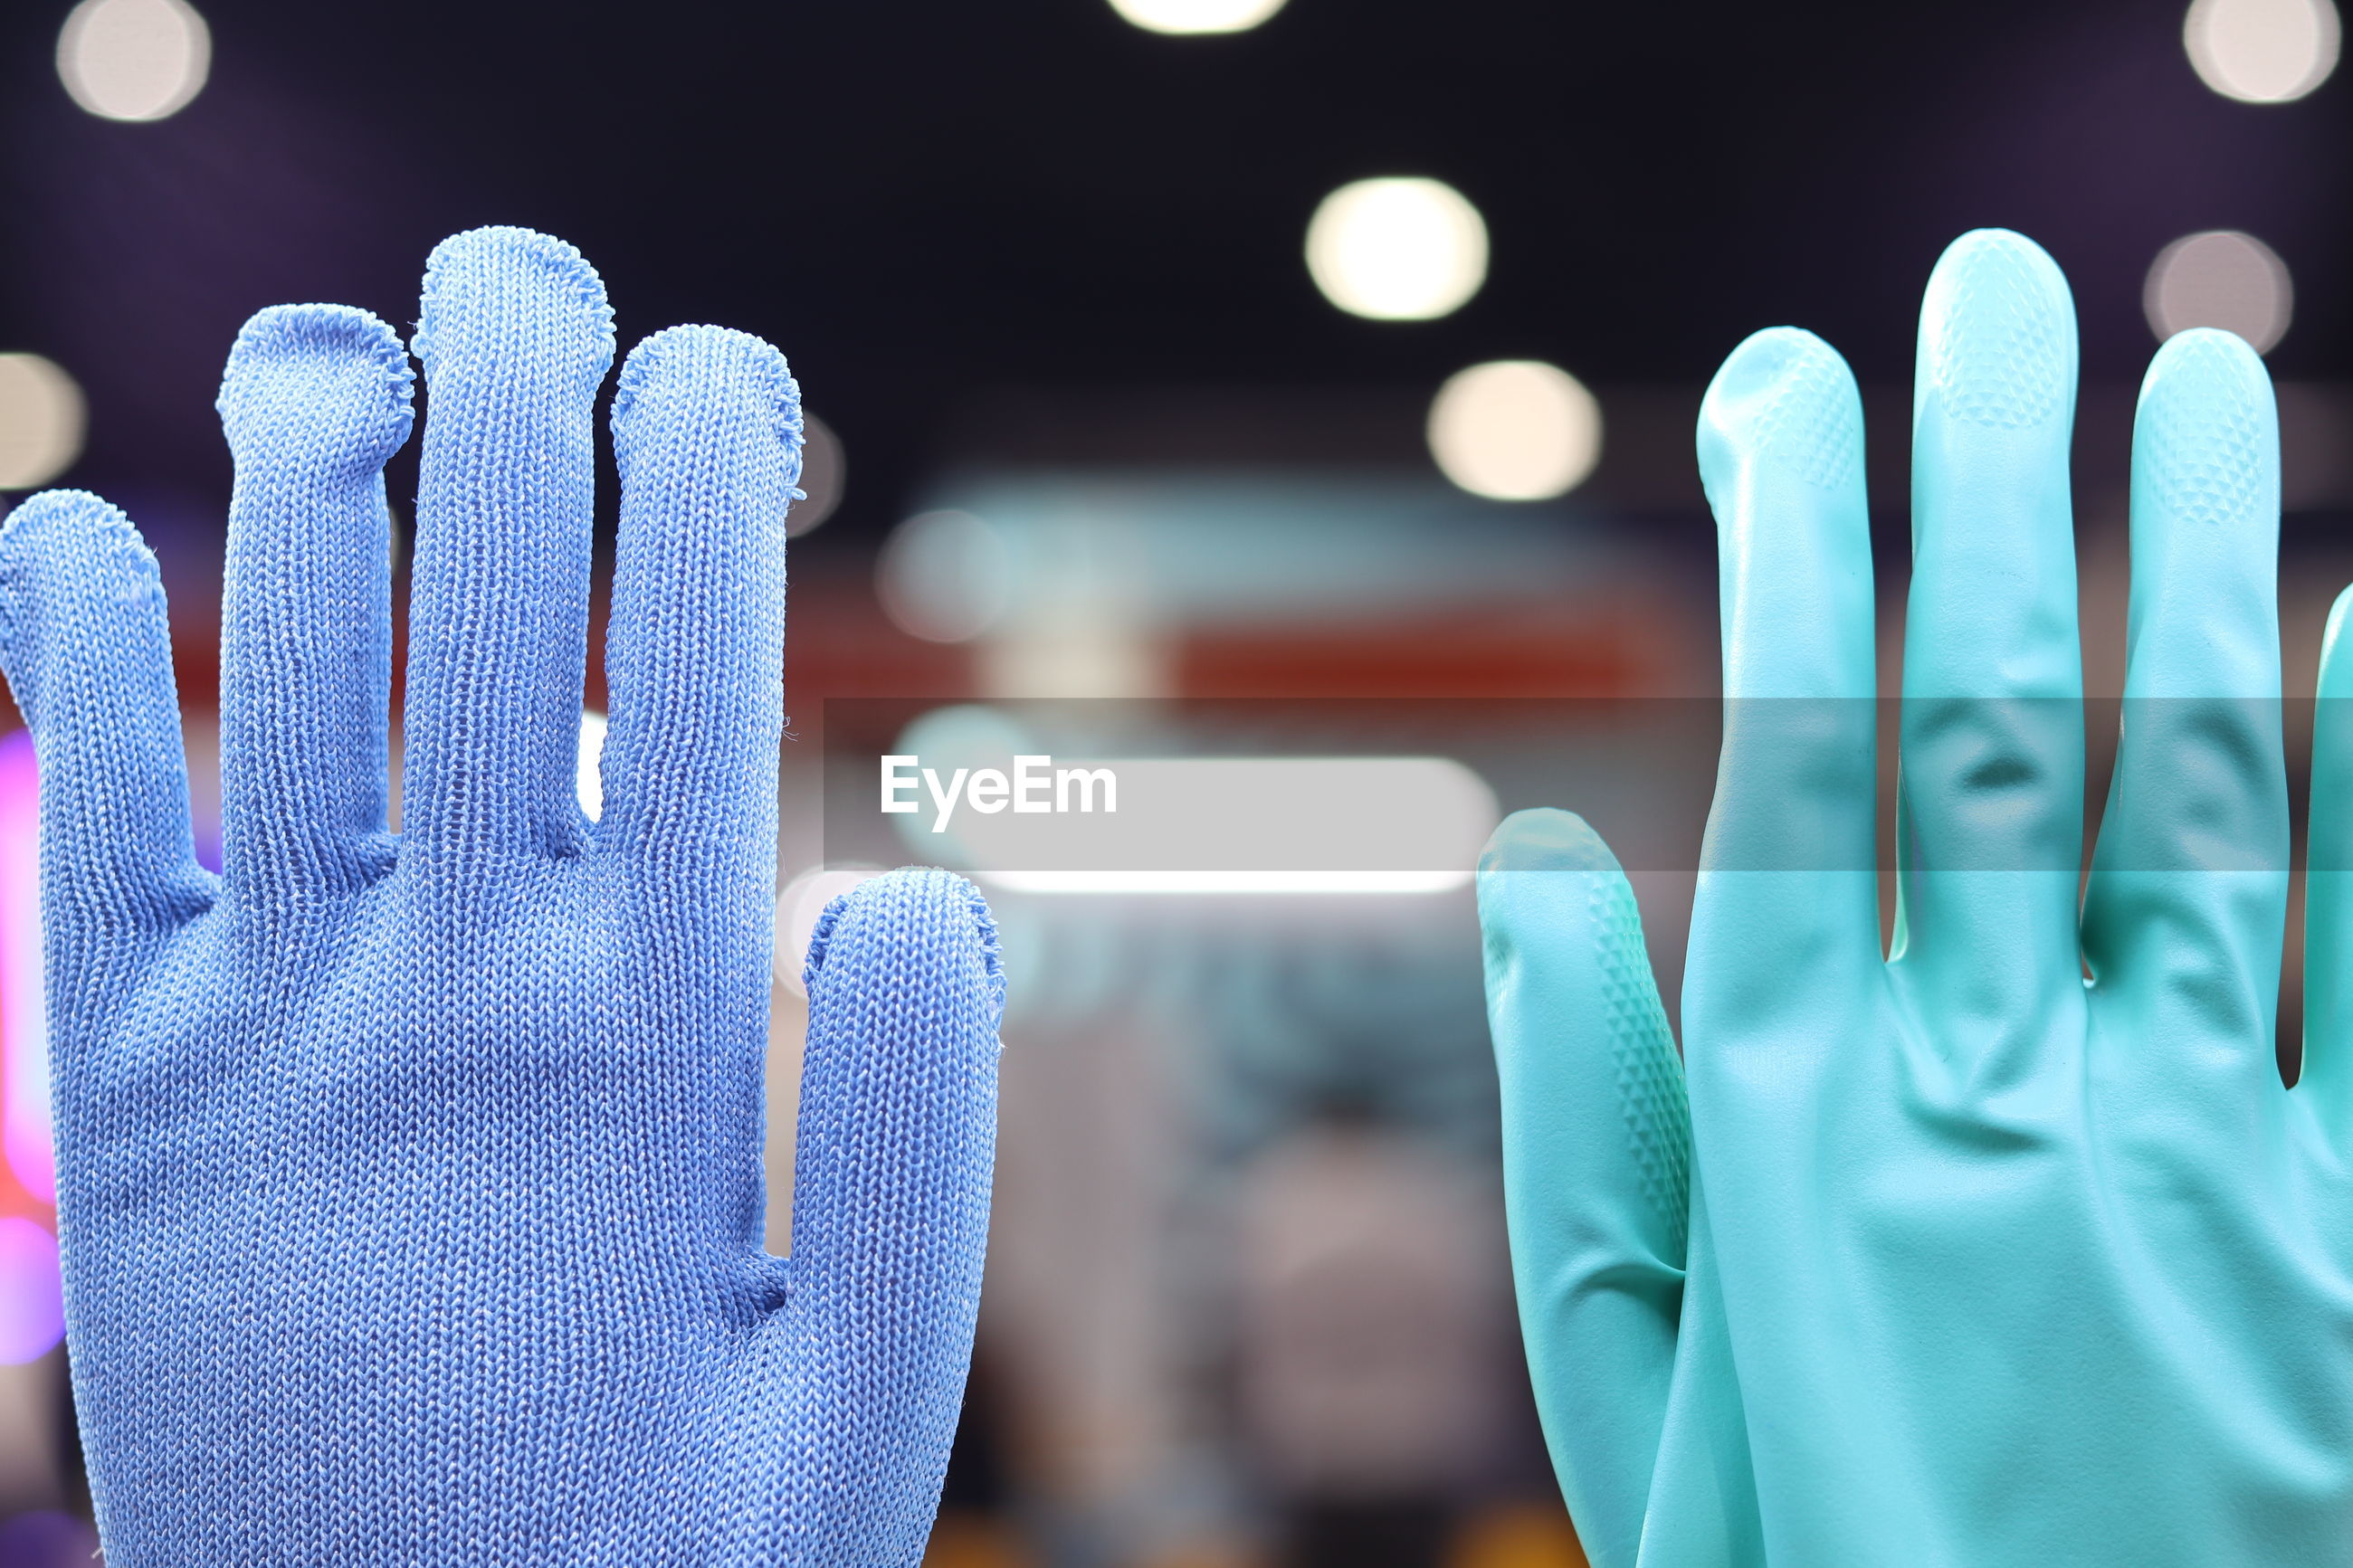 Cropped hands wearing gloves